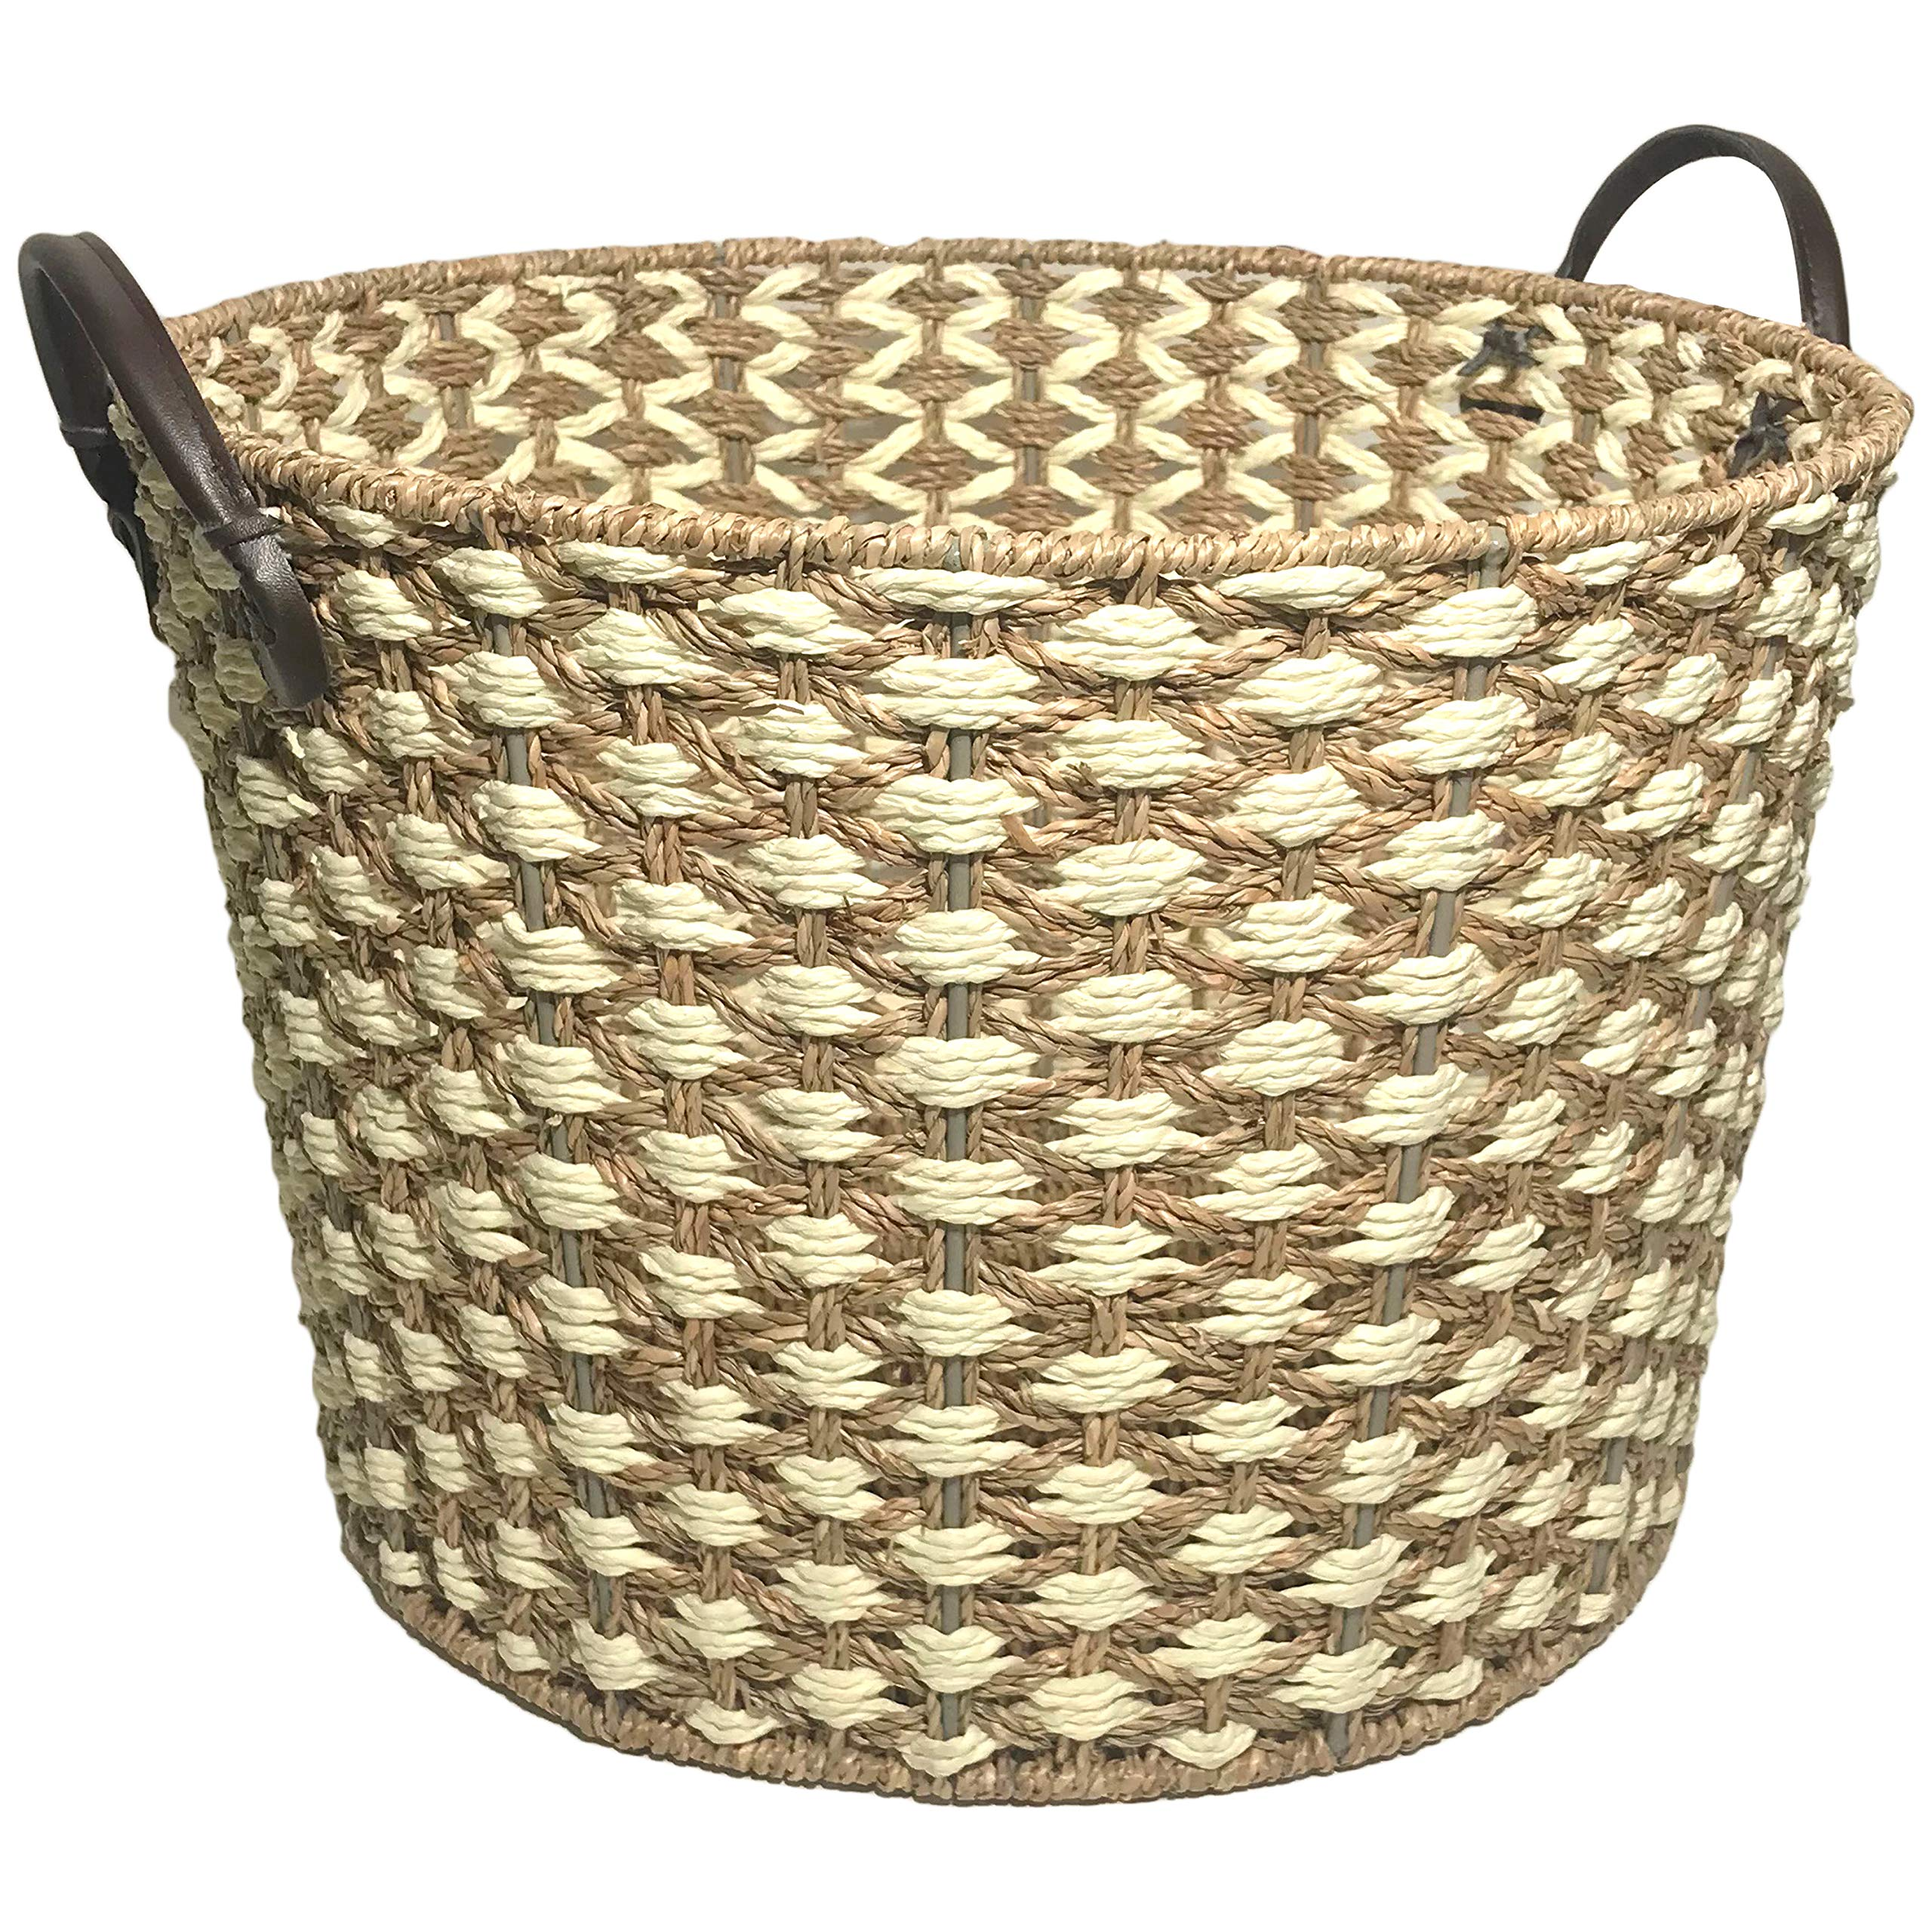 Storage Basket - Hand Woven Large Seagrass Rope Storage Baskets with Faux Leather Handles by Basket Bins